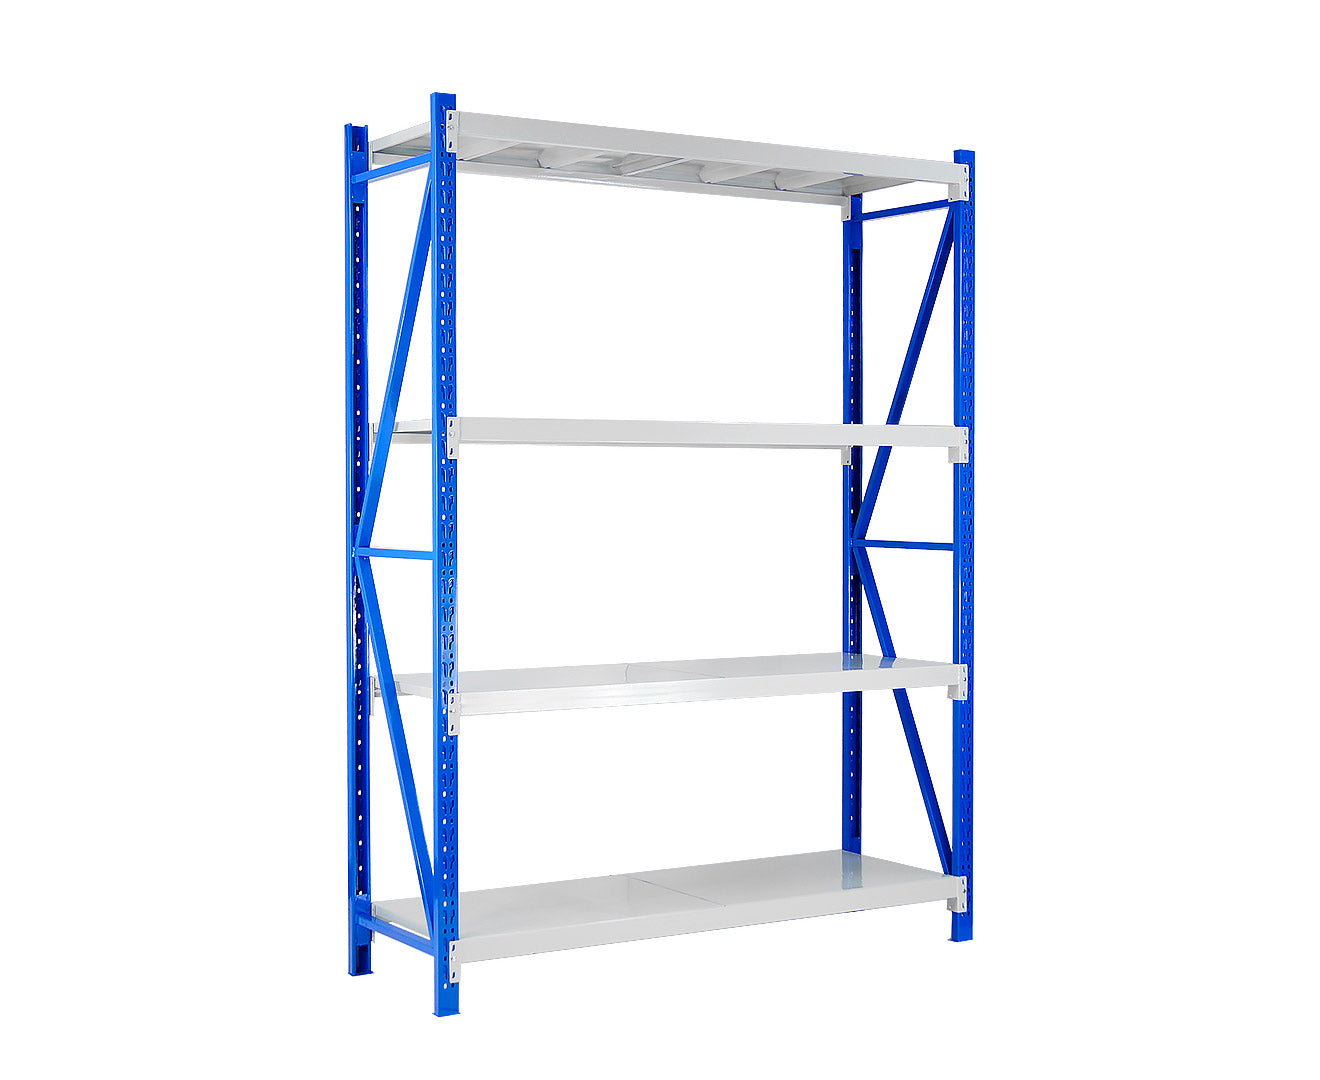 1 Bay Garage Storage Steel Rack Long Span Shelving 2.0m-wide 800kg